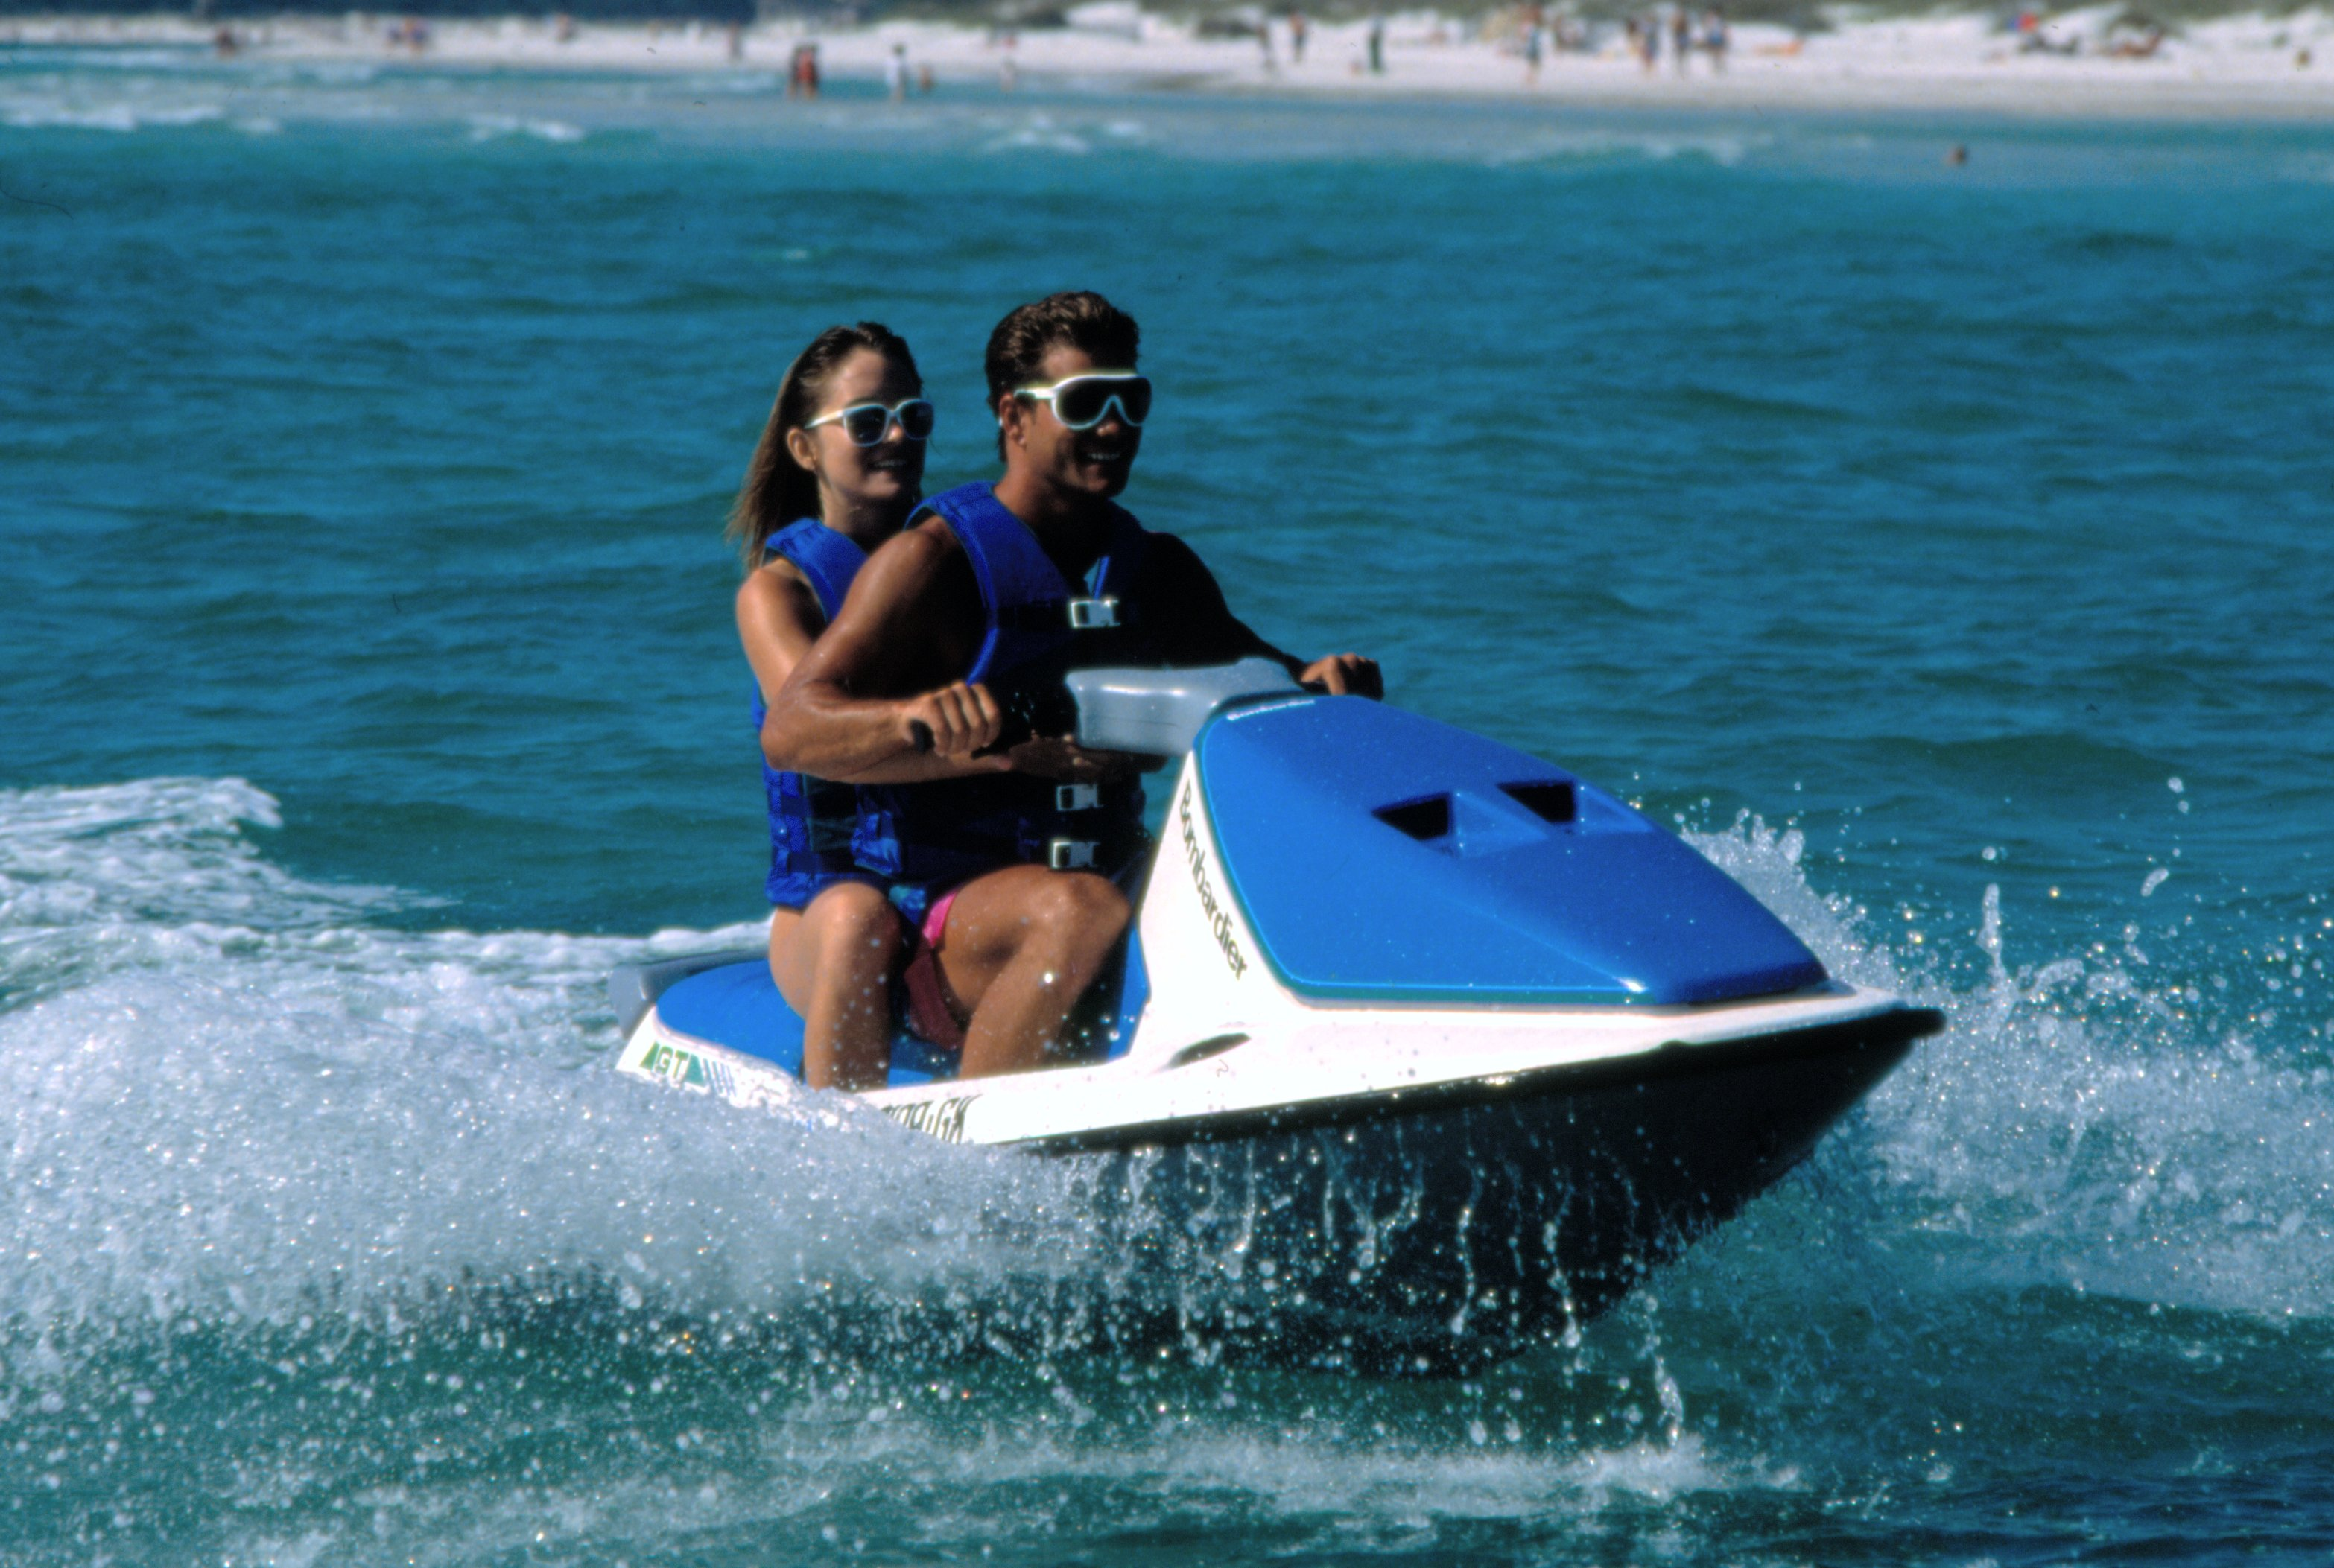 impeller sea doo onboard rh blog sea doo com Sea-Doo Parts and Service Sea-Doo Jet Ski Parts